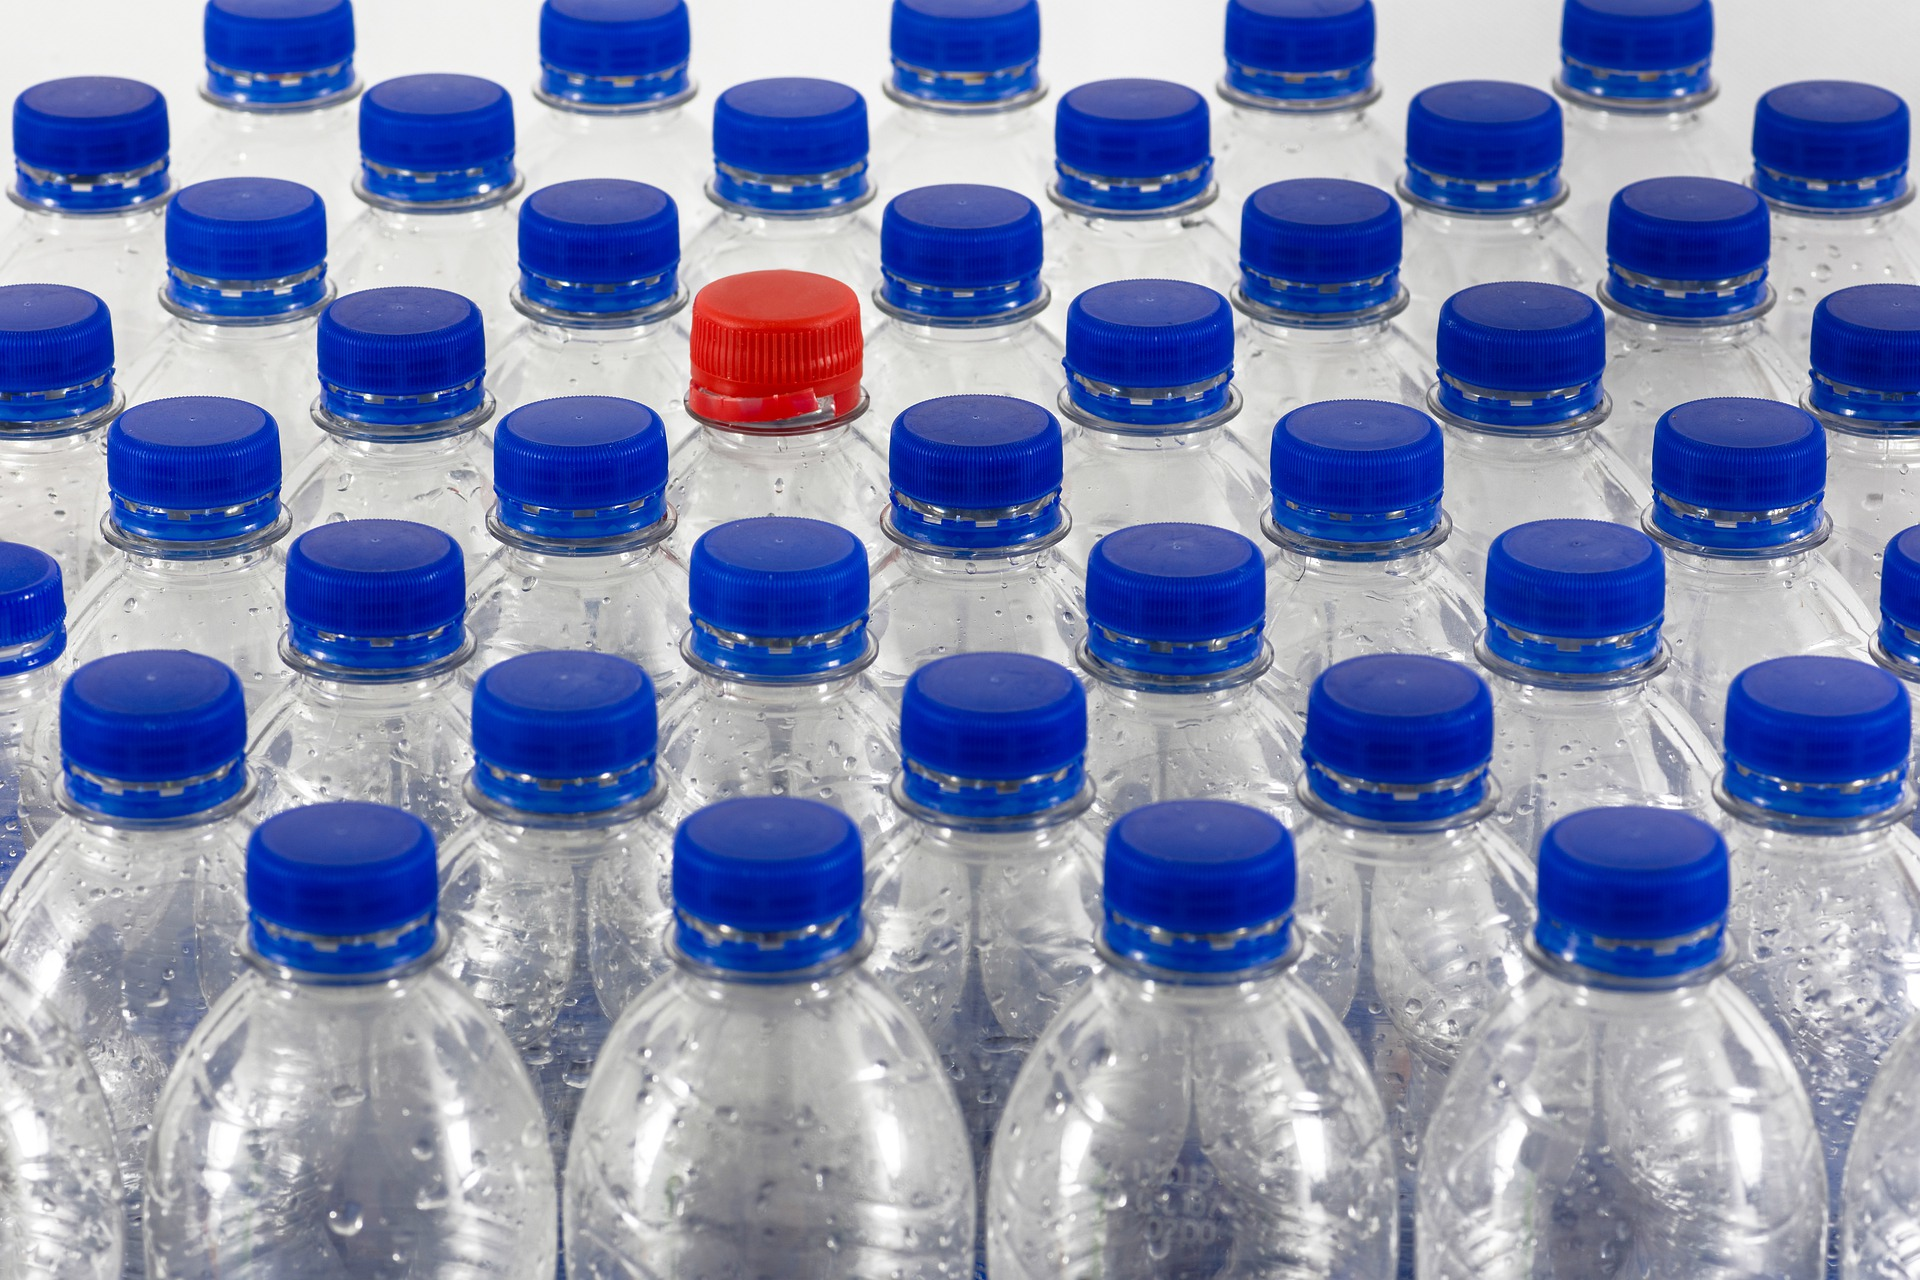 Water Bottles Grouped